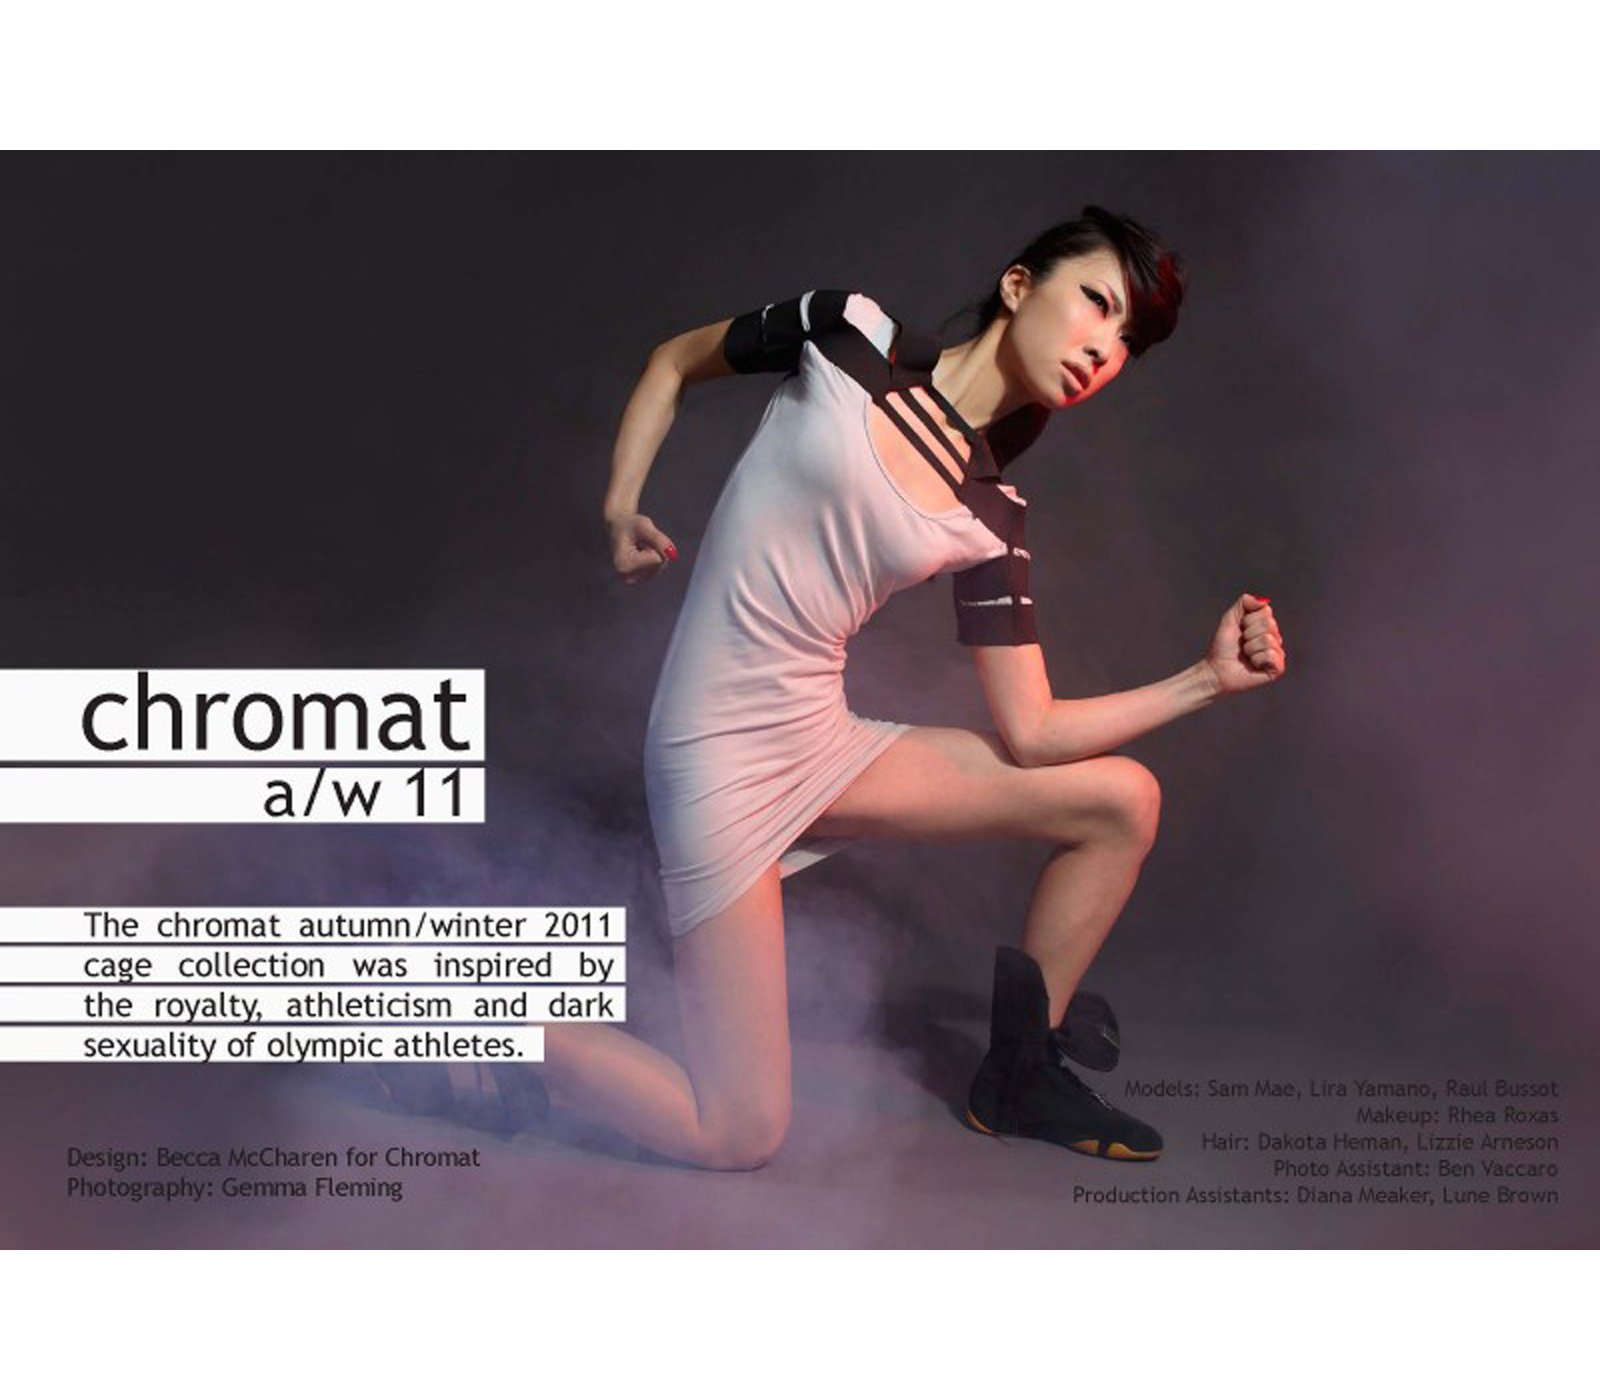 Chromat-AW11-Lookbook_Page_02-800x550 copy.png